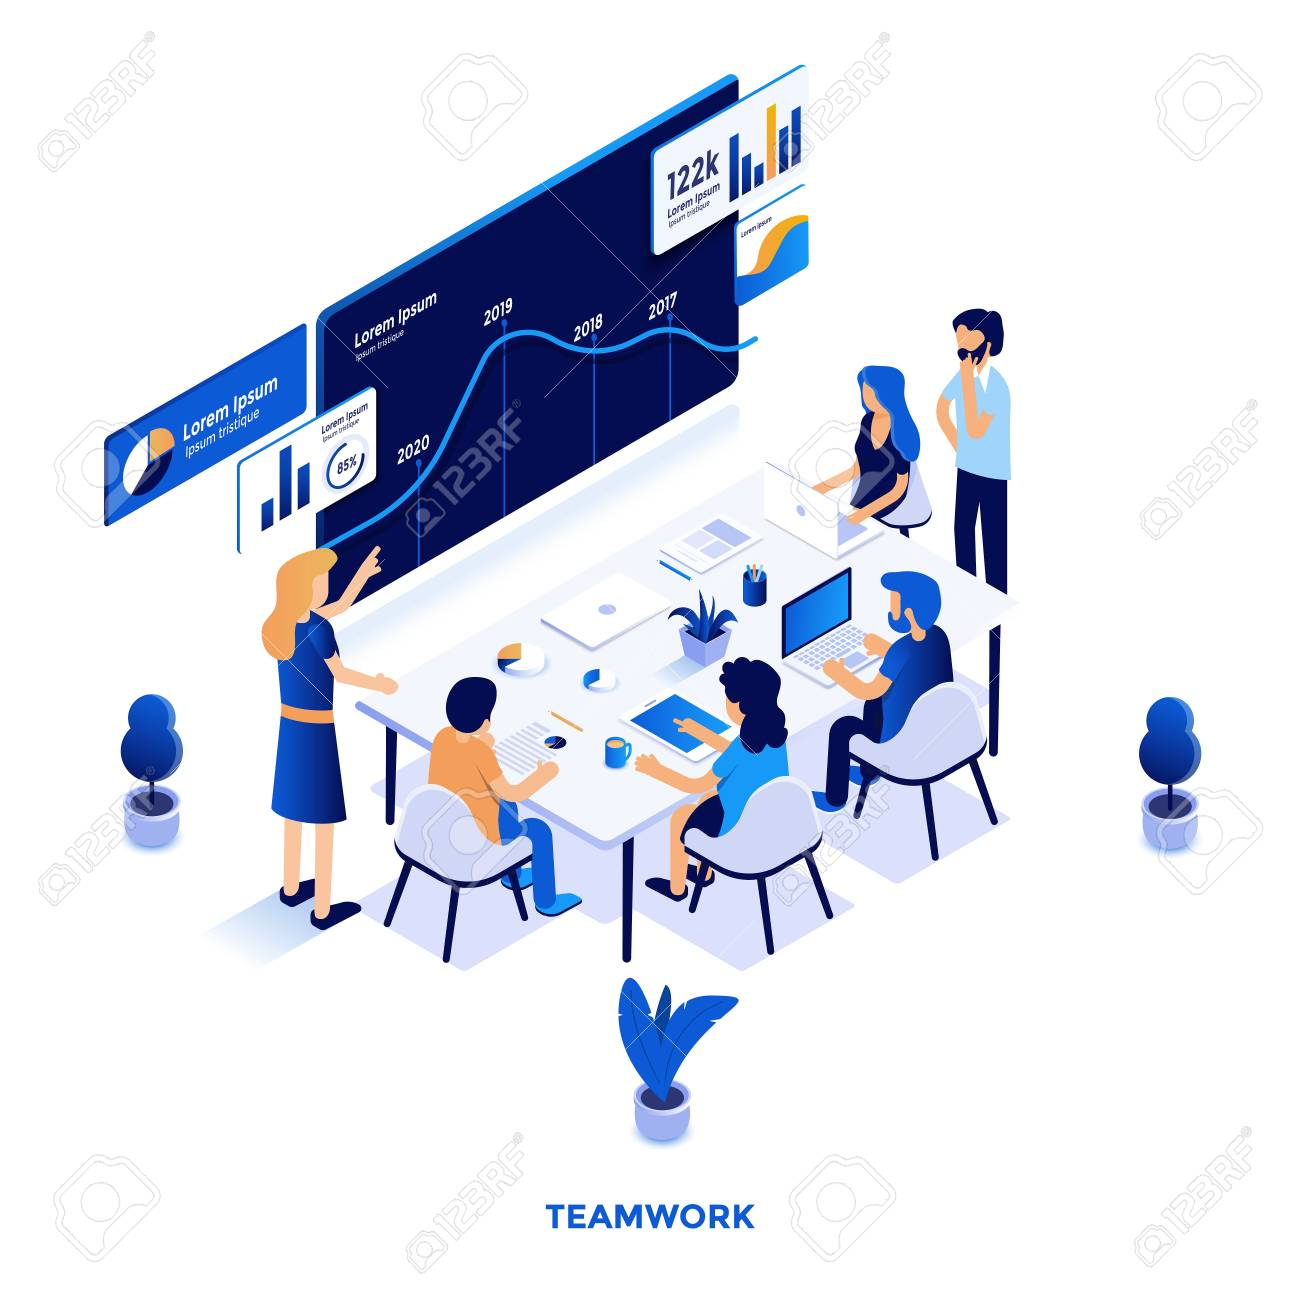 Modern flat design isometric illustration of Teamwork. Can be used for website and mobile website or Landing page. Easy to edit and customize. Vector illustration - 126264052